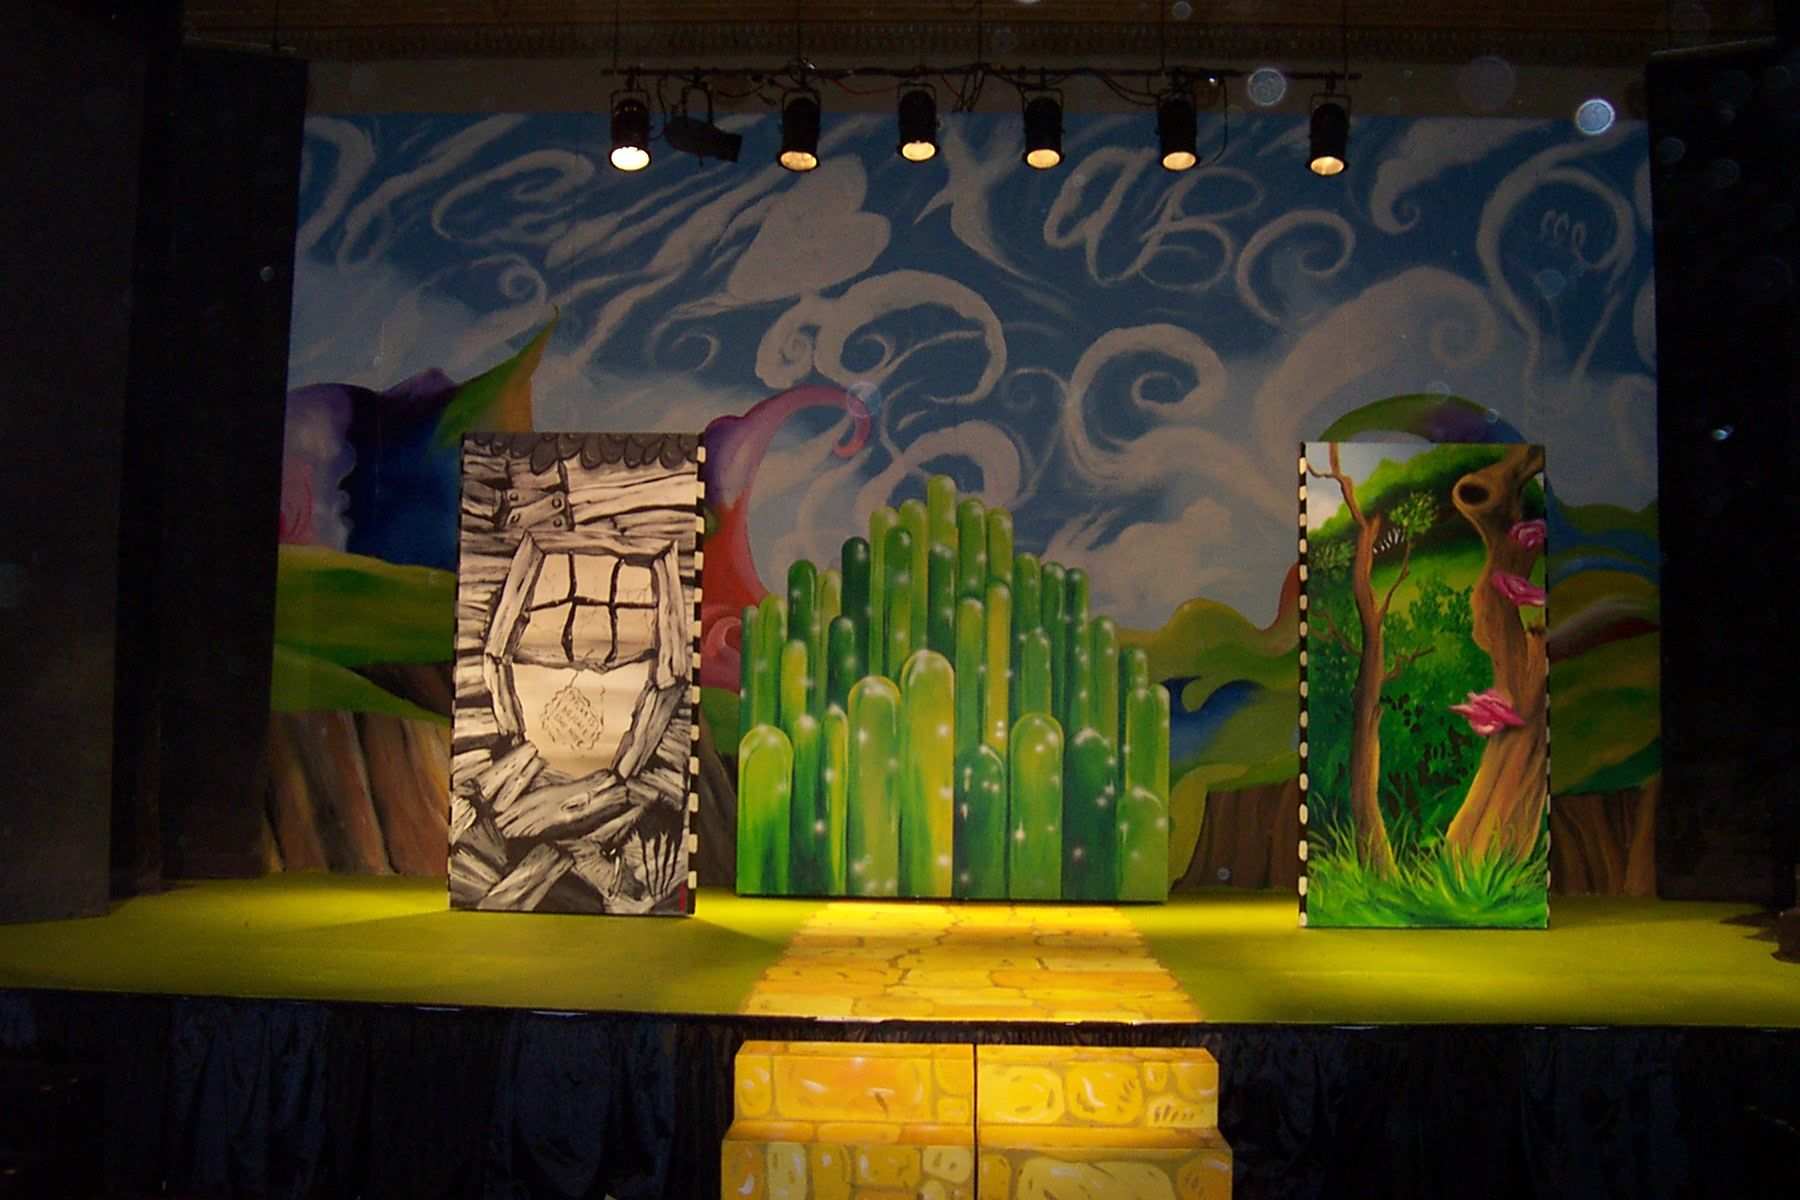 best images about wizard of oz stage design jr high on 17 best images about wizard of oz stage design jr high wizard of oz games dr oz and entrance